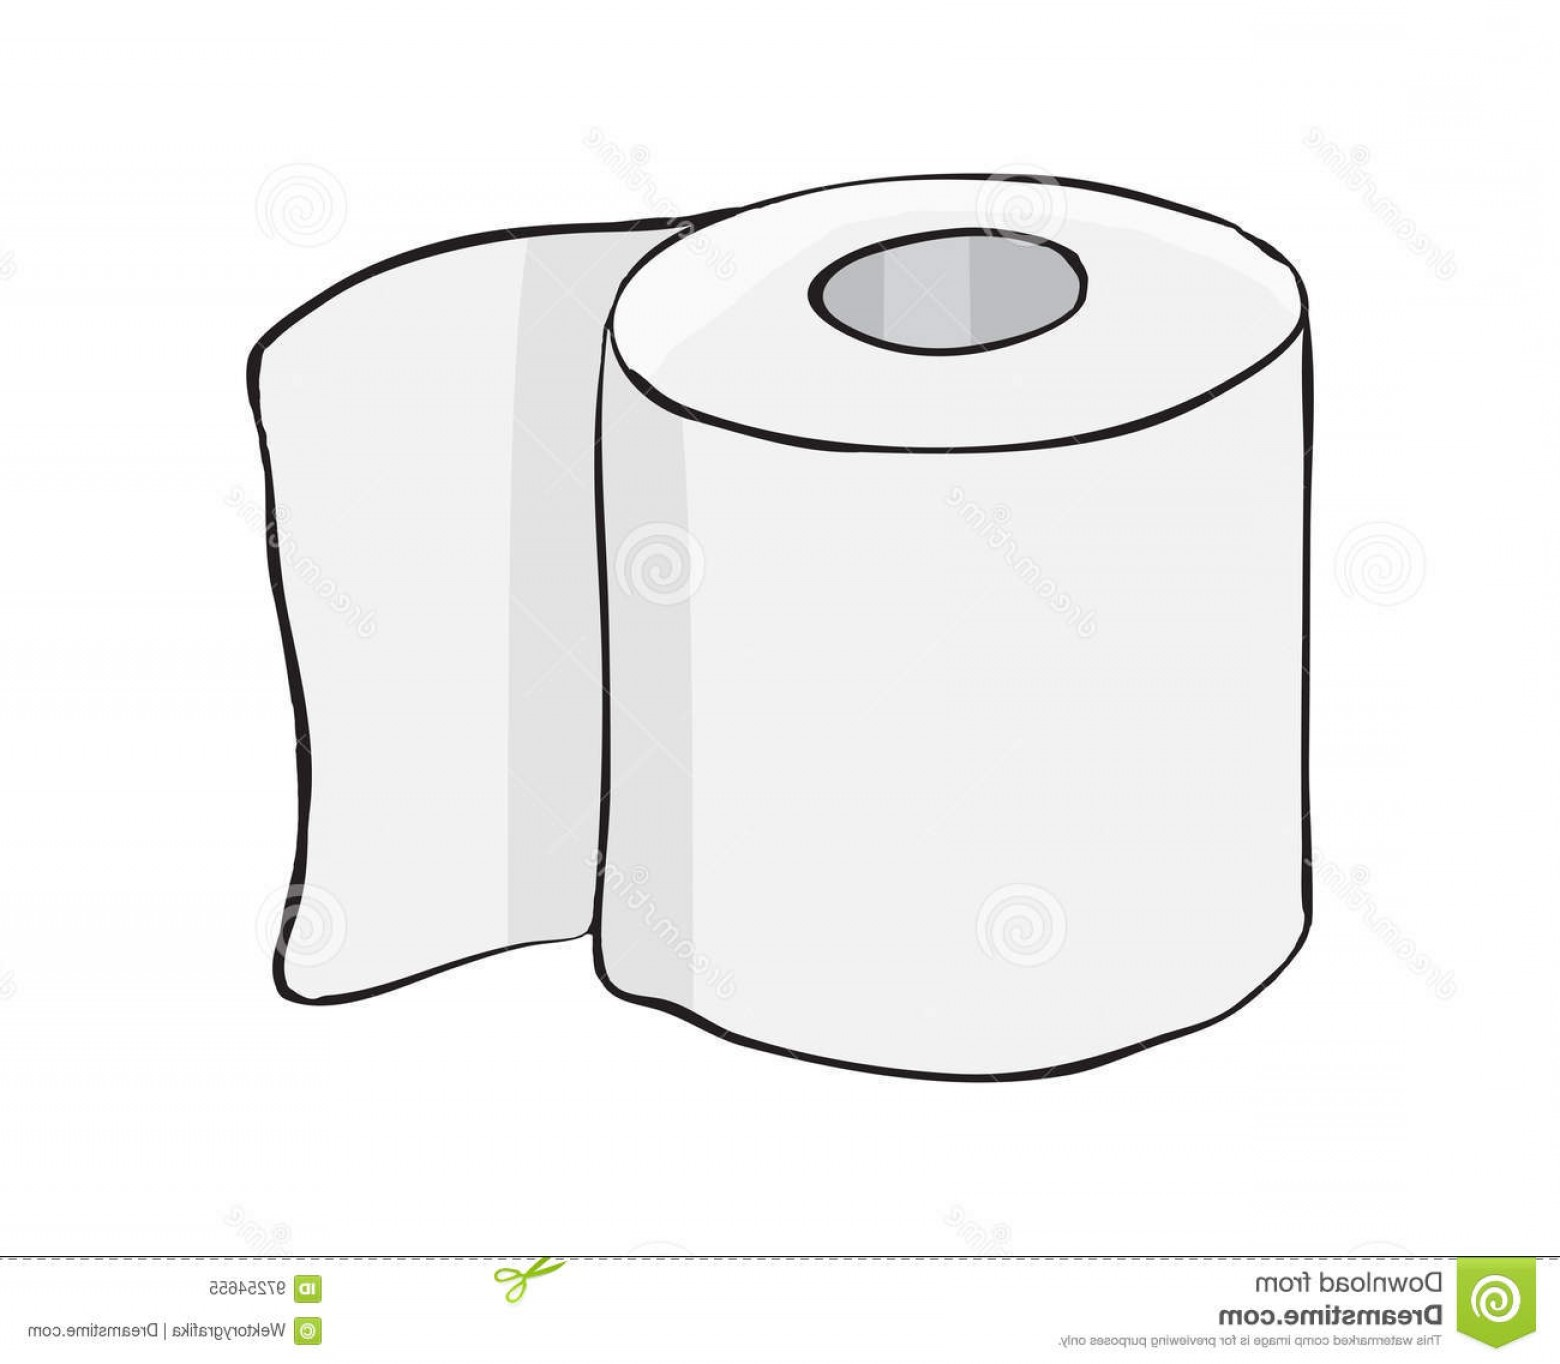 Toilet Paper Vector: Stock Illustration Toilet Paper Roll Vector Symbol Icon Design Beautiful Illustrat Rool Illustration Isolated White Background Image